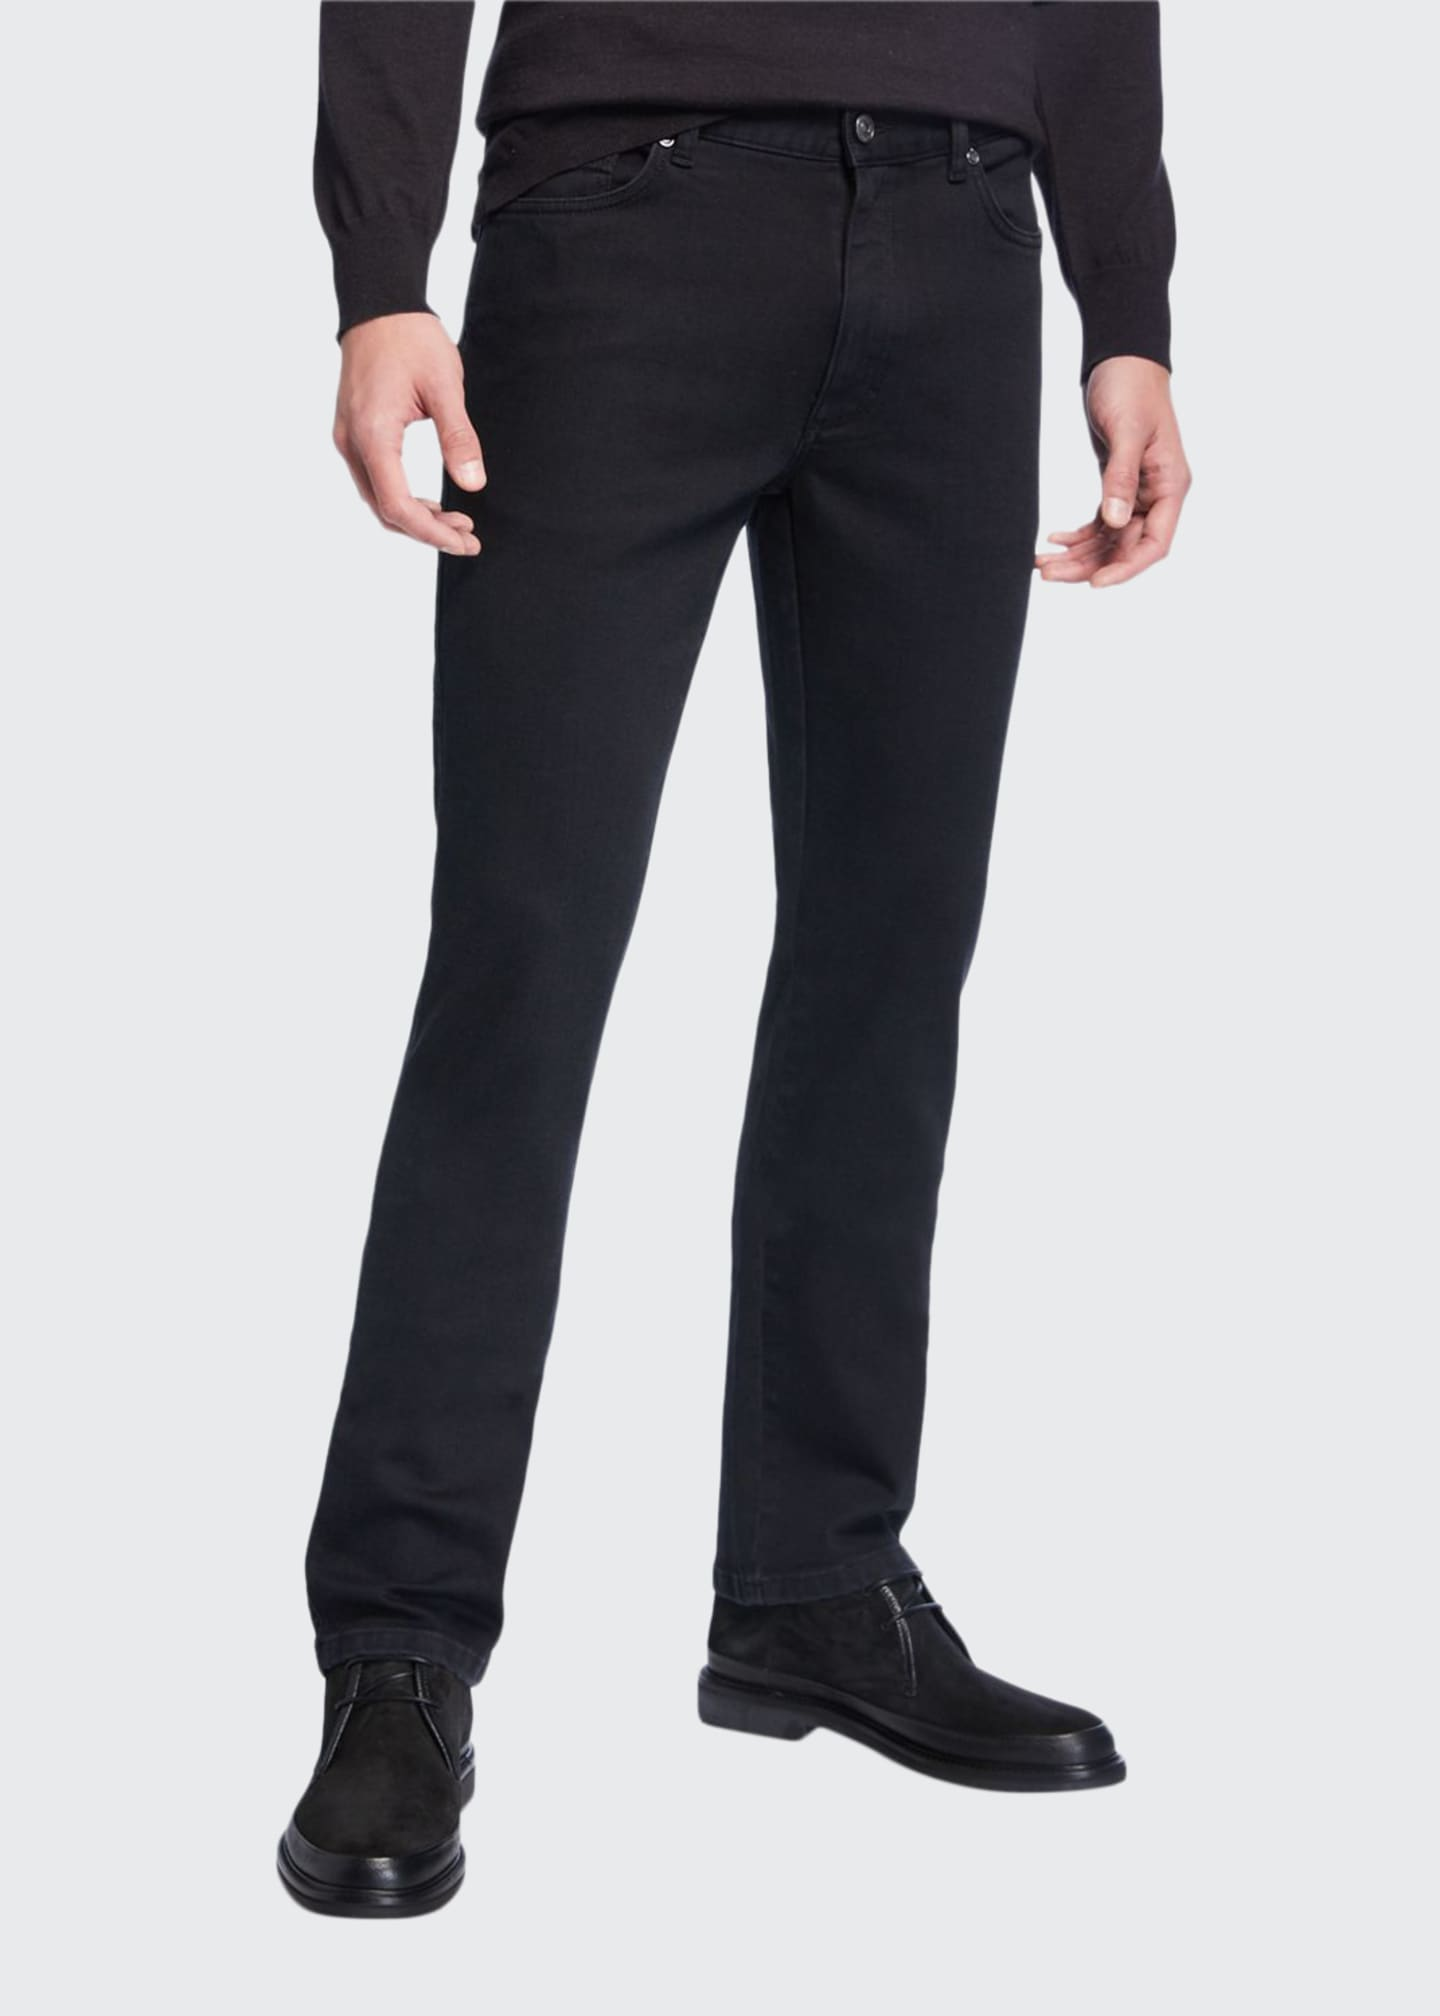 Ermenegildo Zegna Men's 5-Pocket Straight-Leg Jeans